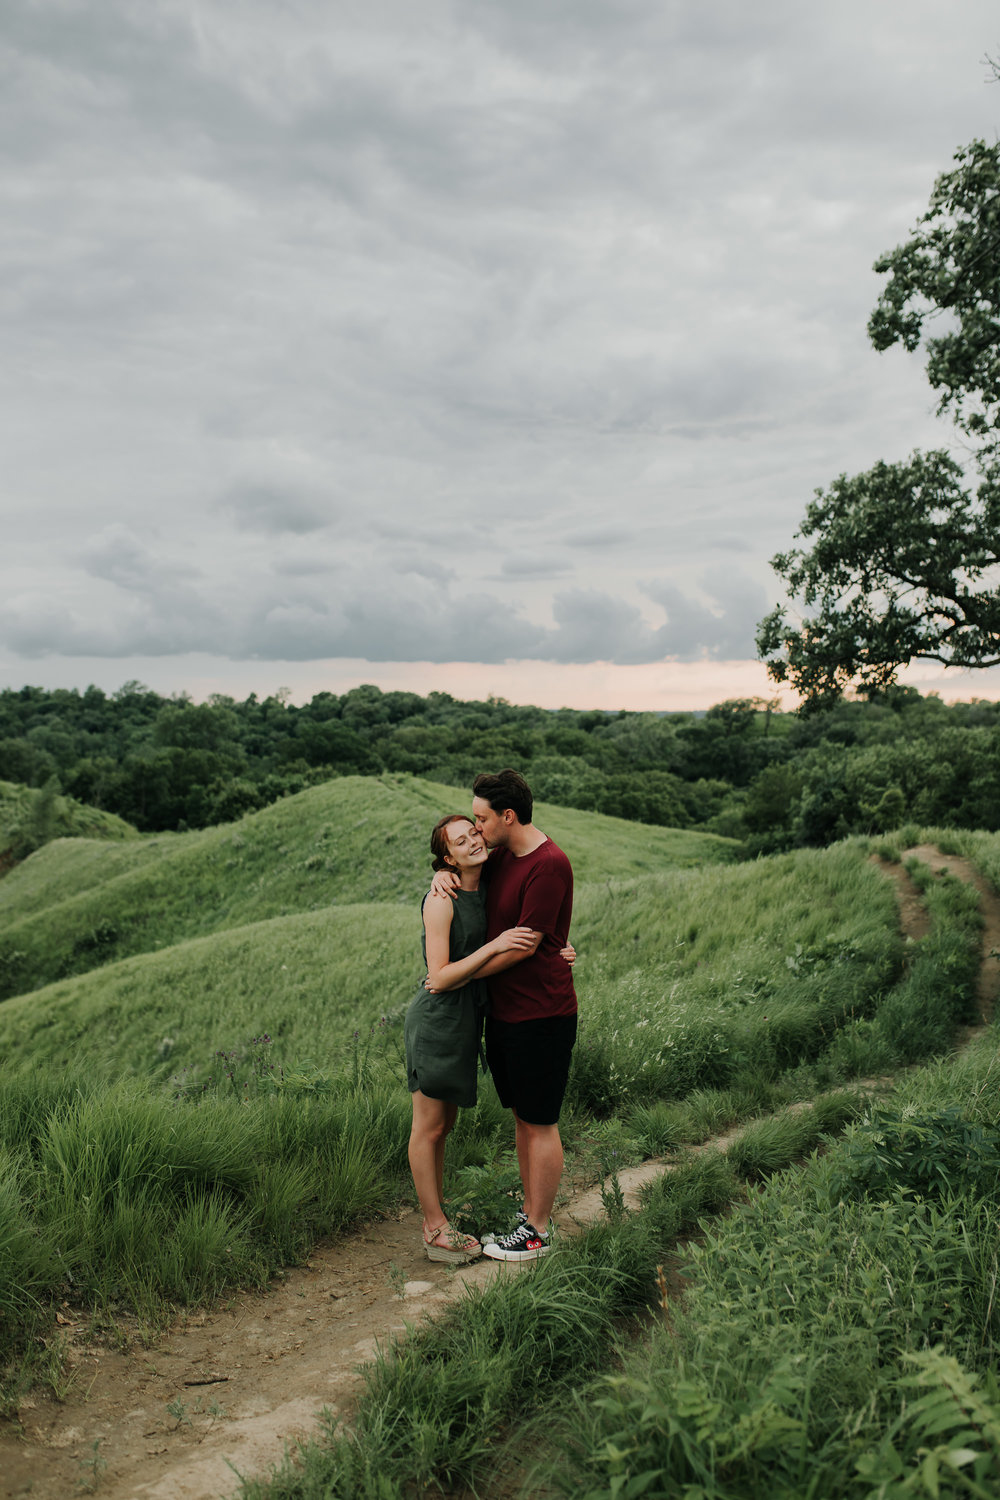 Sydney & Thomas - Engaged - Nathaniel Jensen Photography - Omaha Nebraska Wedding Photographer-53.jpg